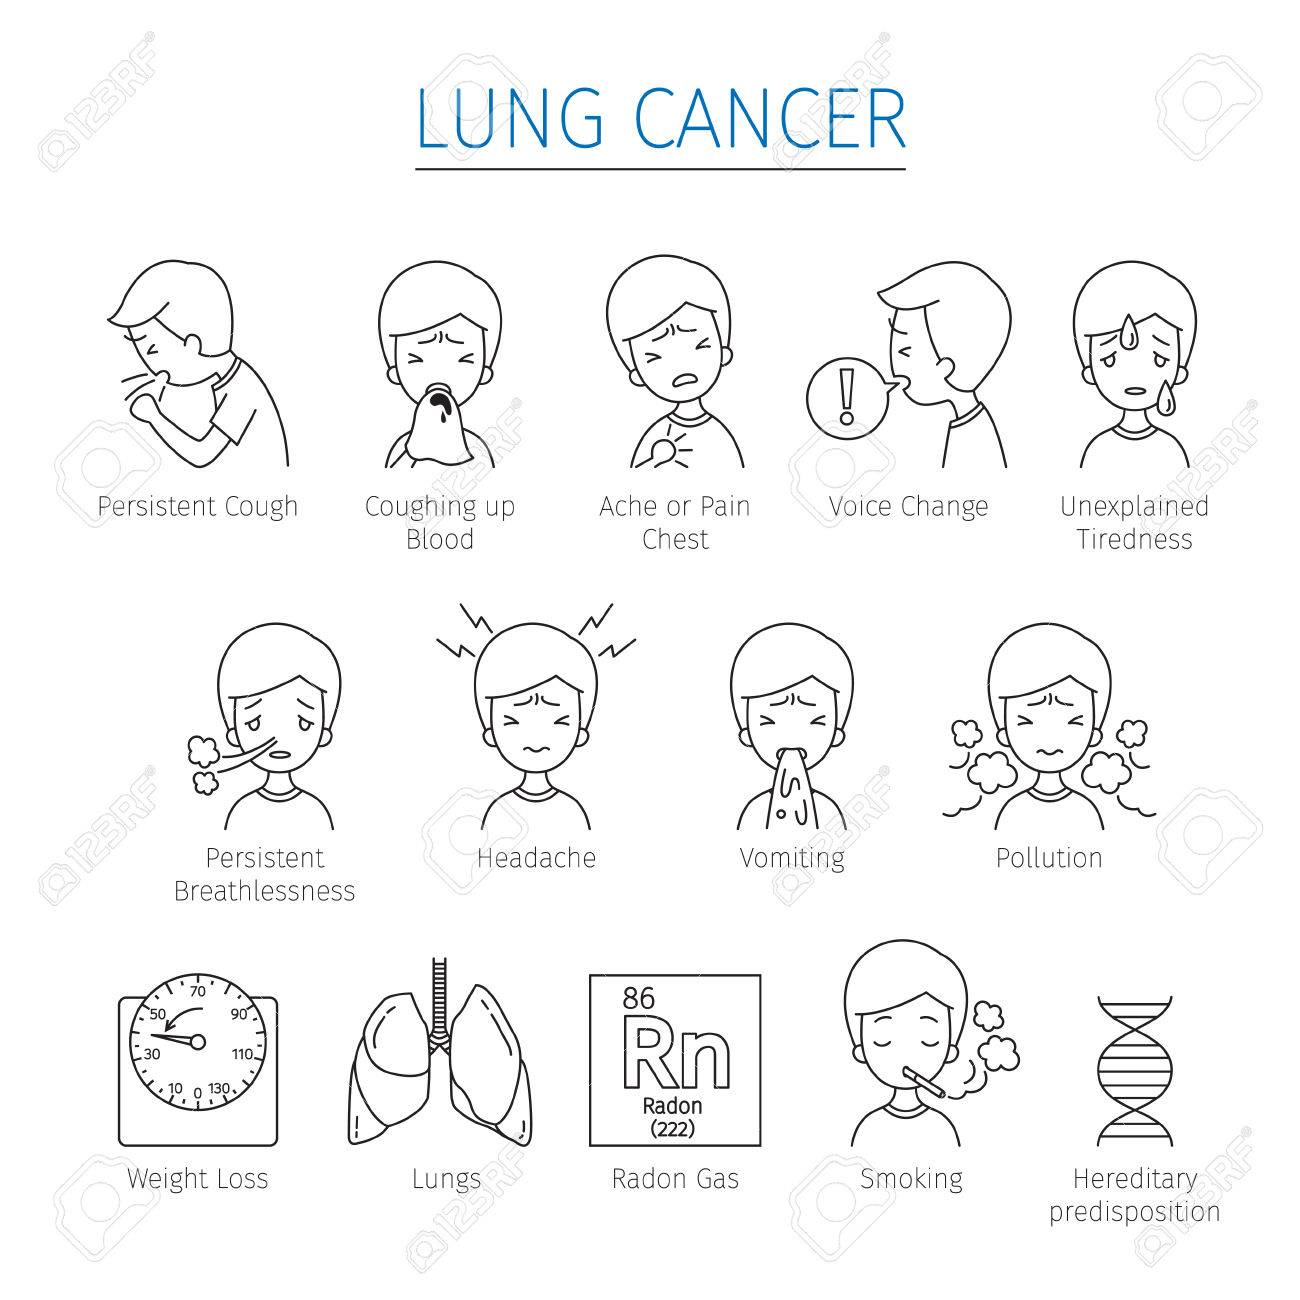 Groß Lung Cancer Anatomy And Physiology Galerie - Menschliche ...